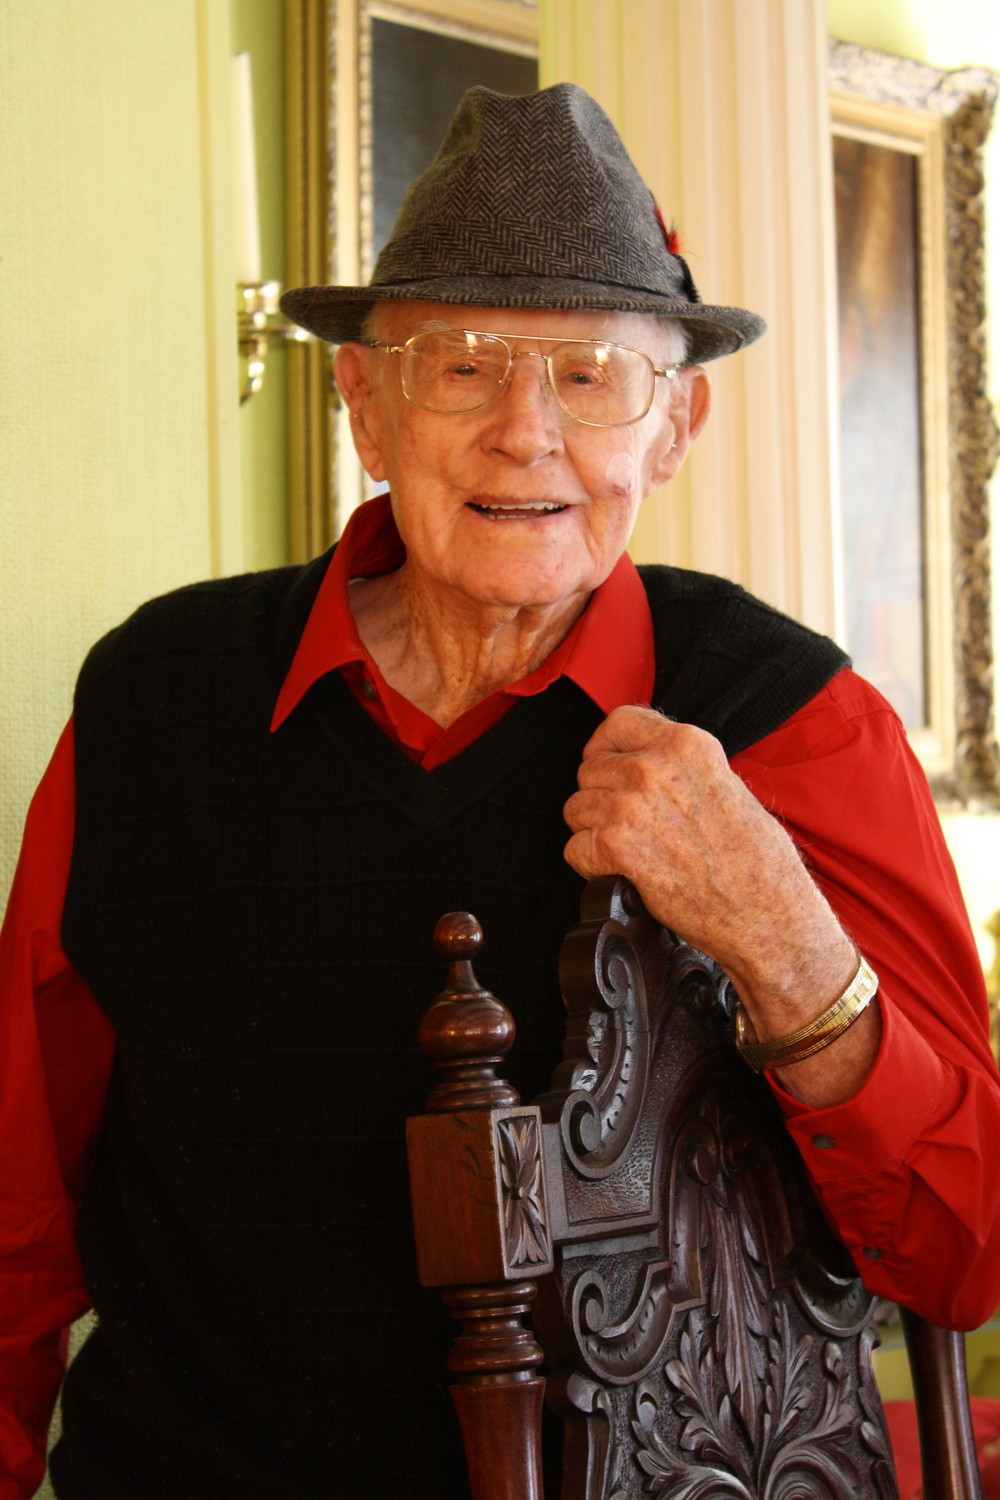 Jack Jones, of Samson, Alabama, turns 105 years old